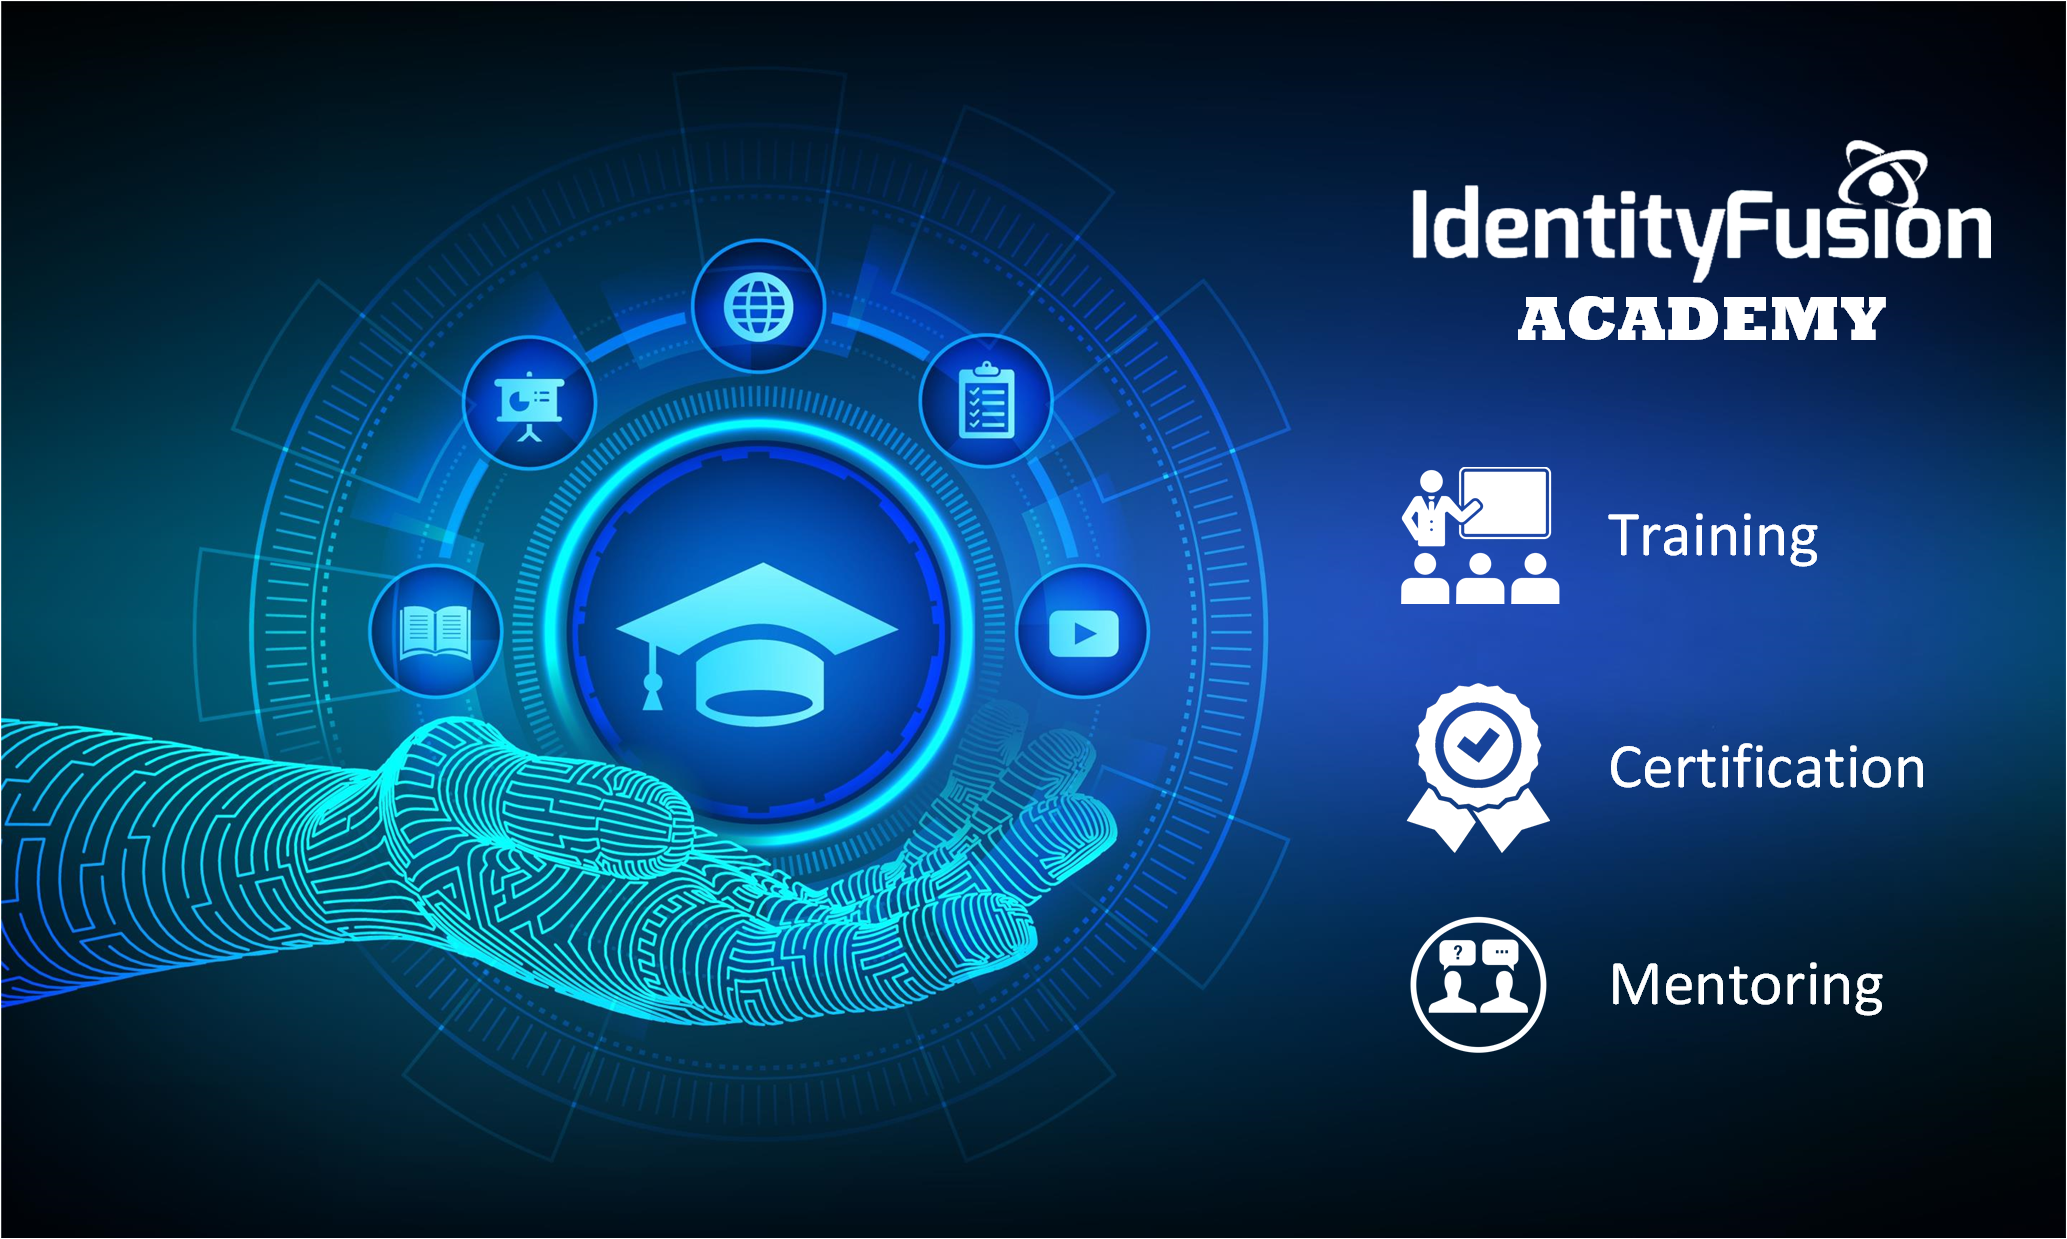 illustration with hand holding graduation cap and education icons and identity fusion academy text